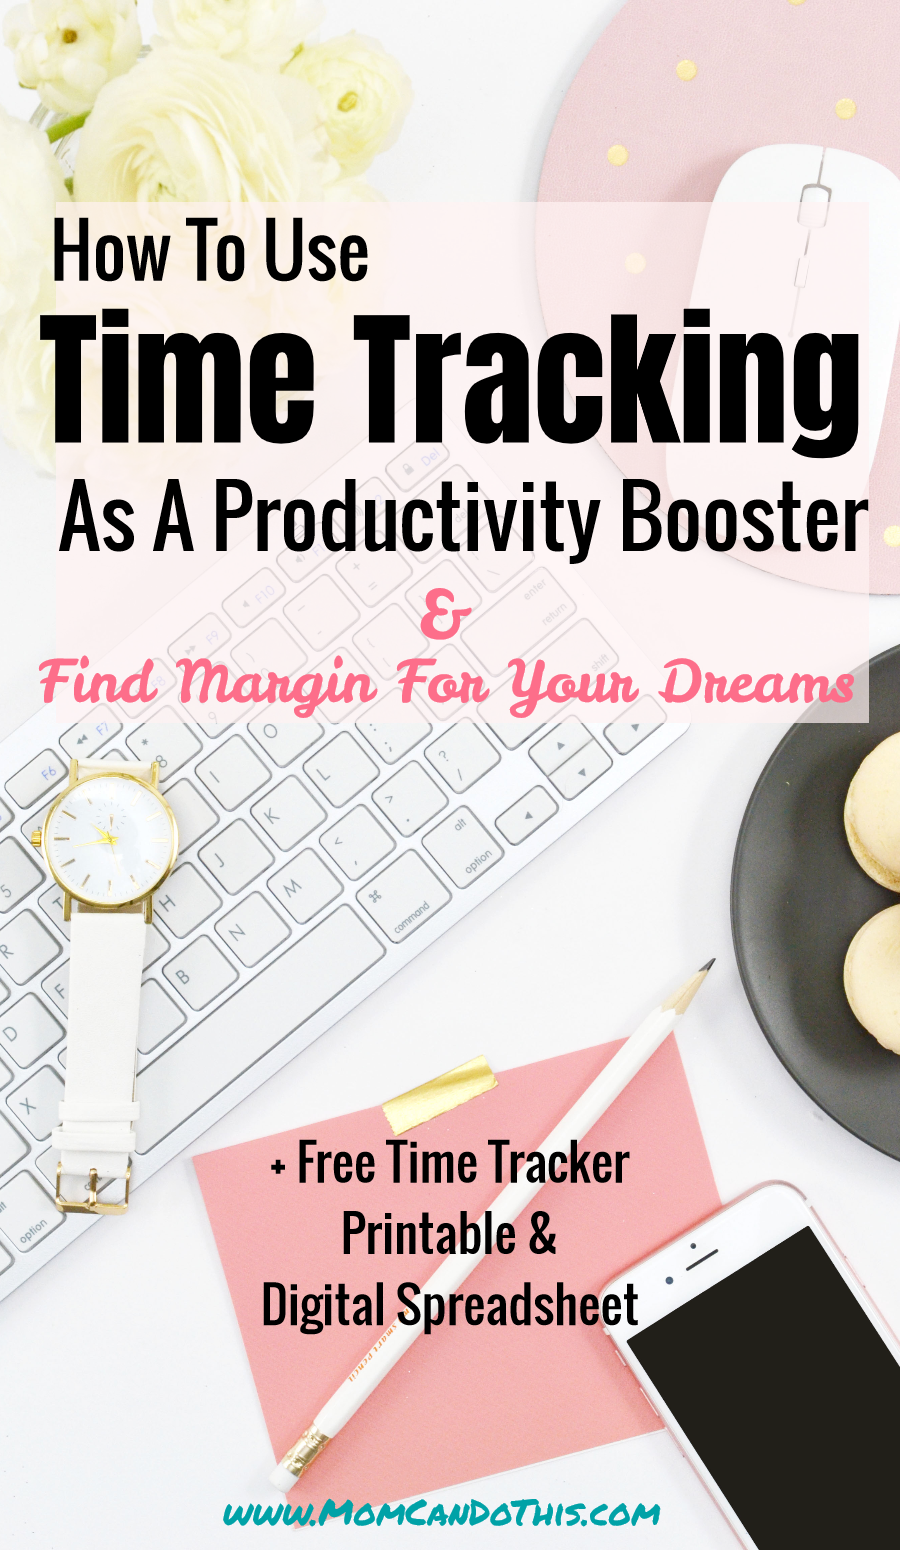 Effective Time Management for Moms. Learn how to track your time and keep an activity log to find margin for your dreams. Click through for free worksheets to use. Learn about useful time management apps to track your time and more productivity tips now.